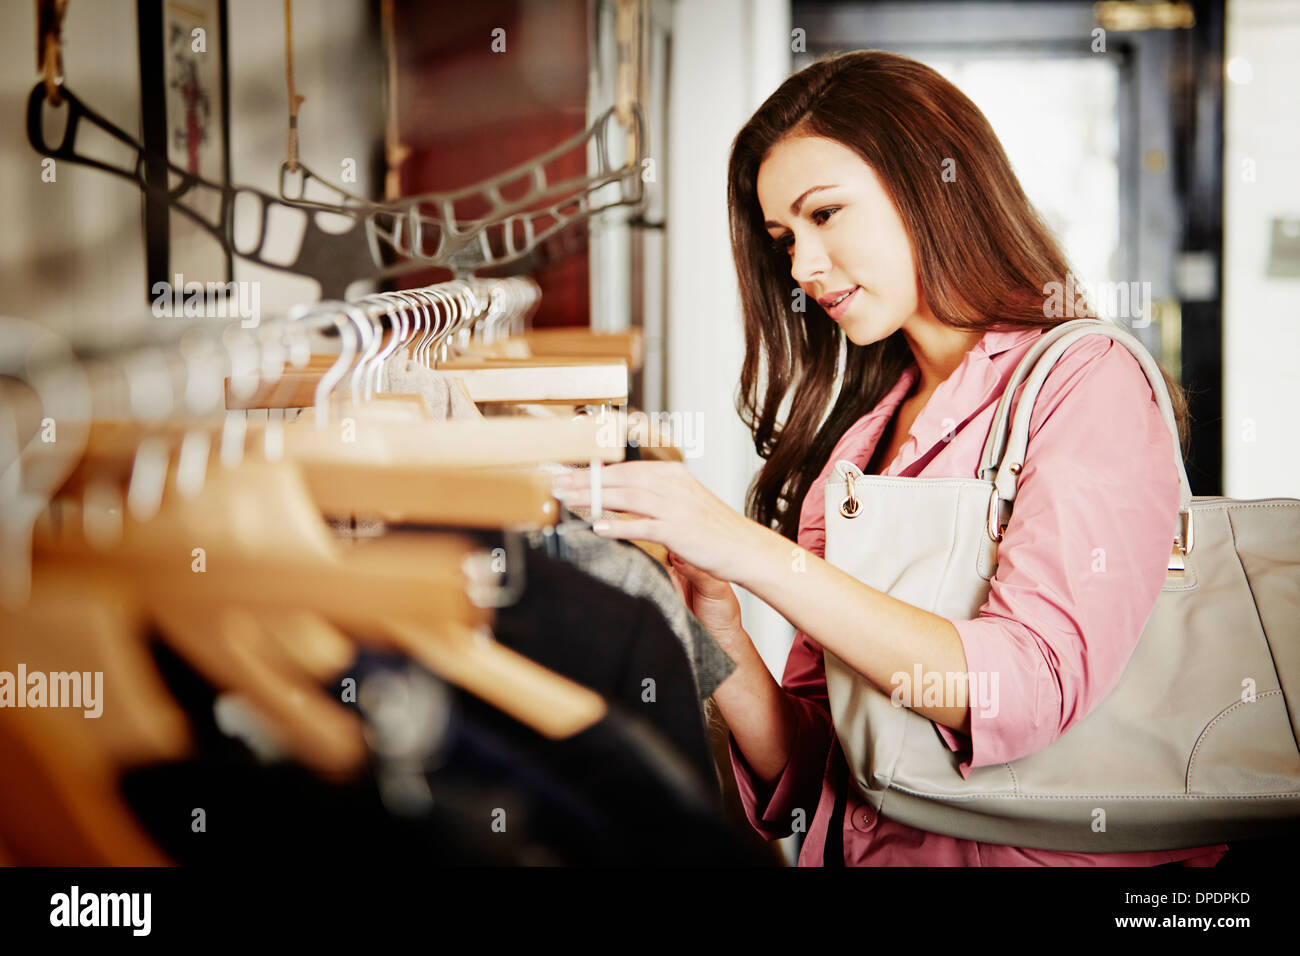 Young woman looking at selection of clothes on clothes rail - Stock Image